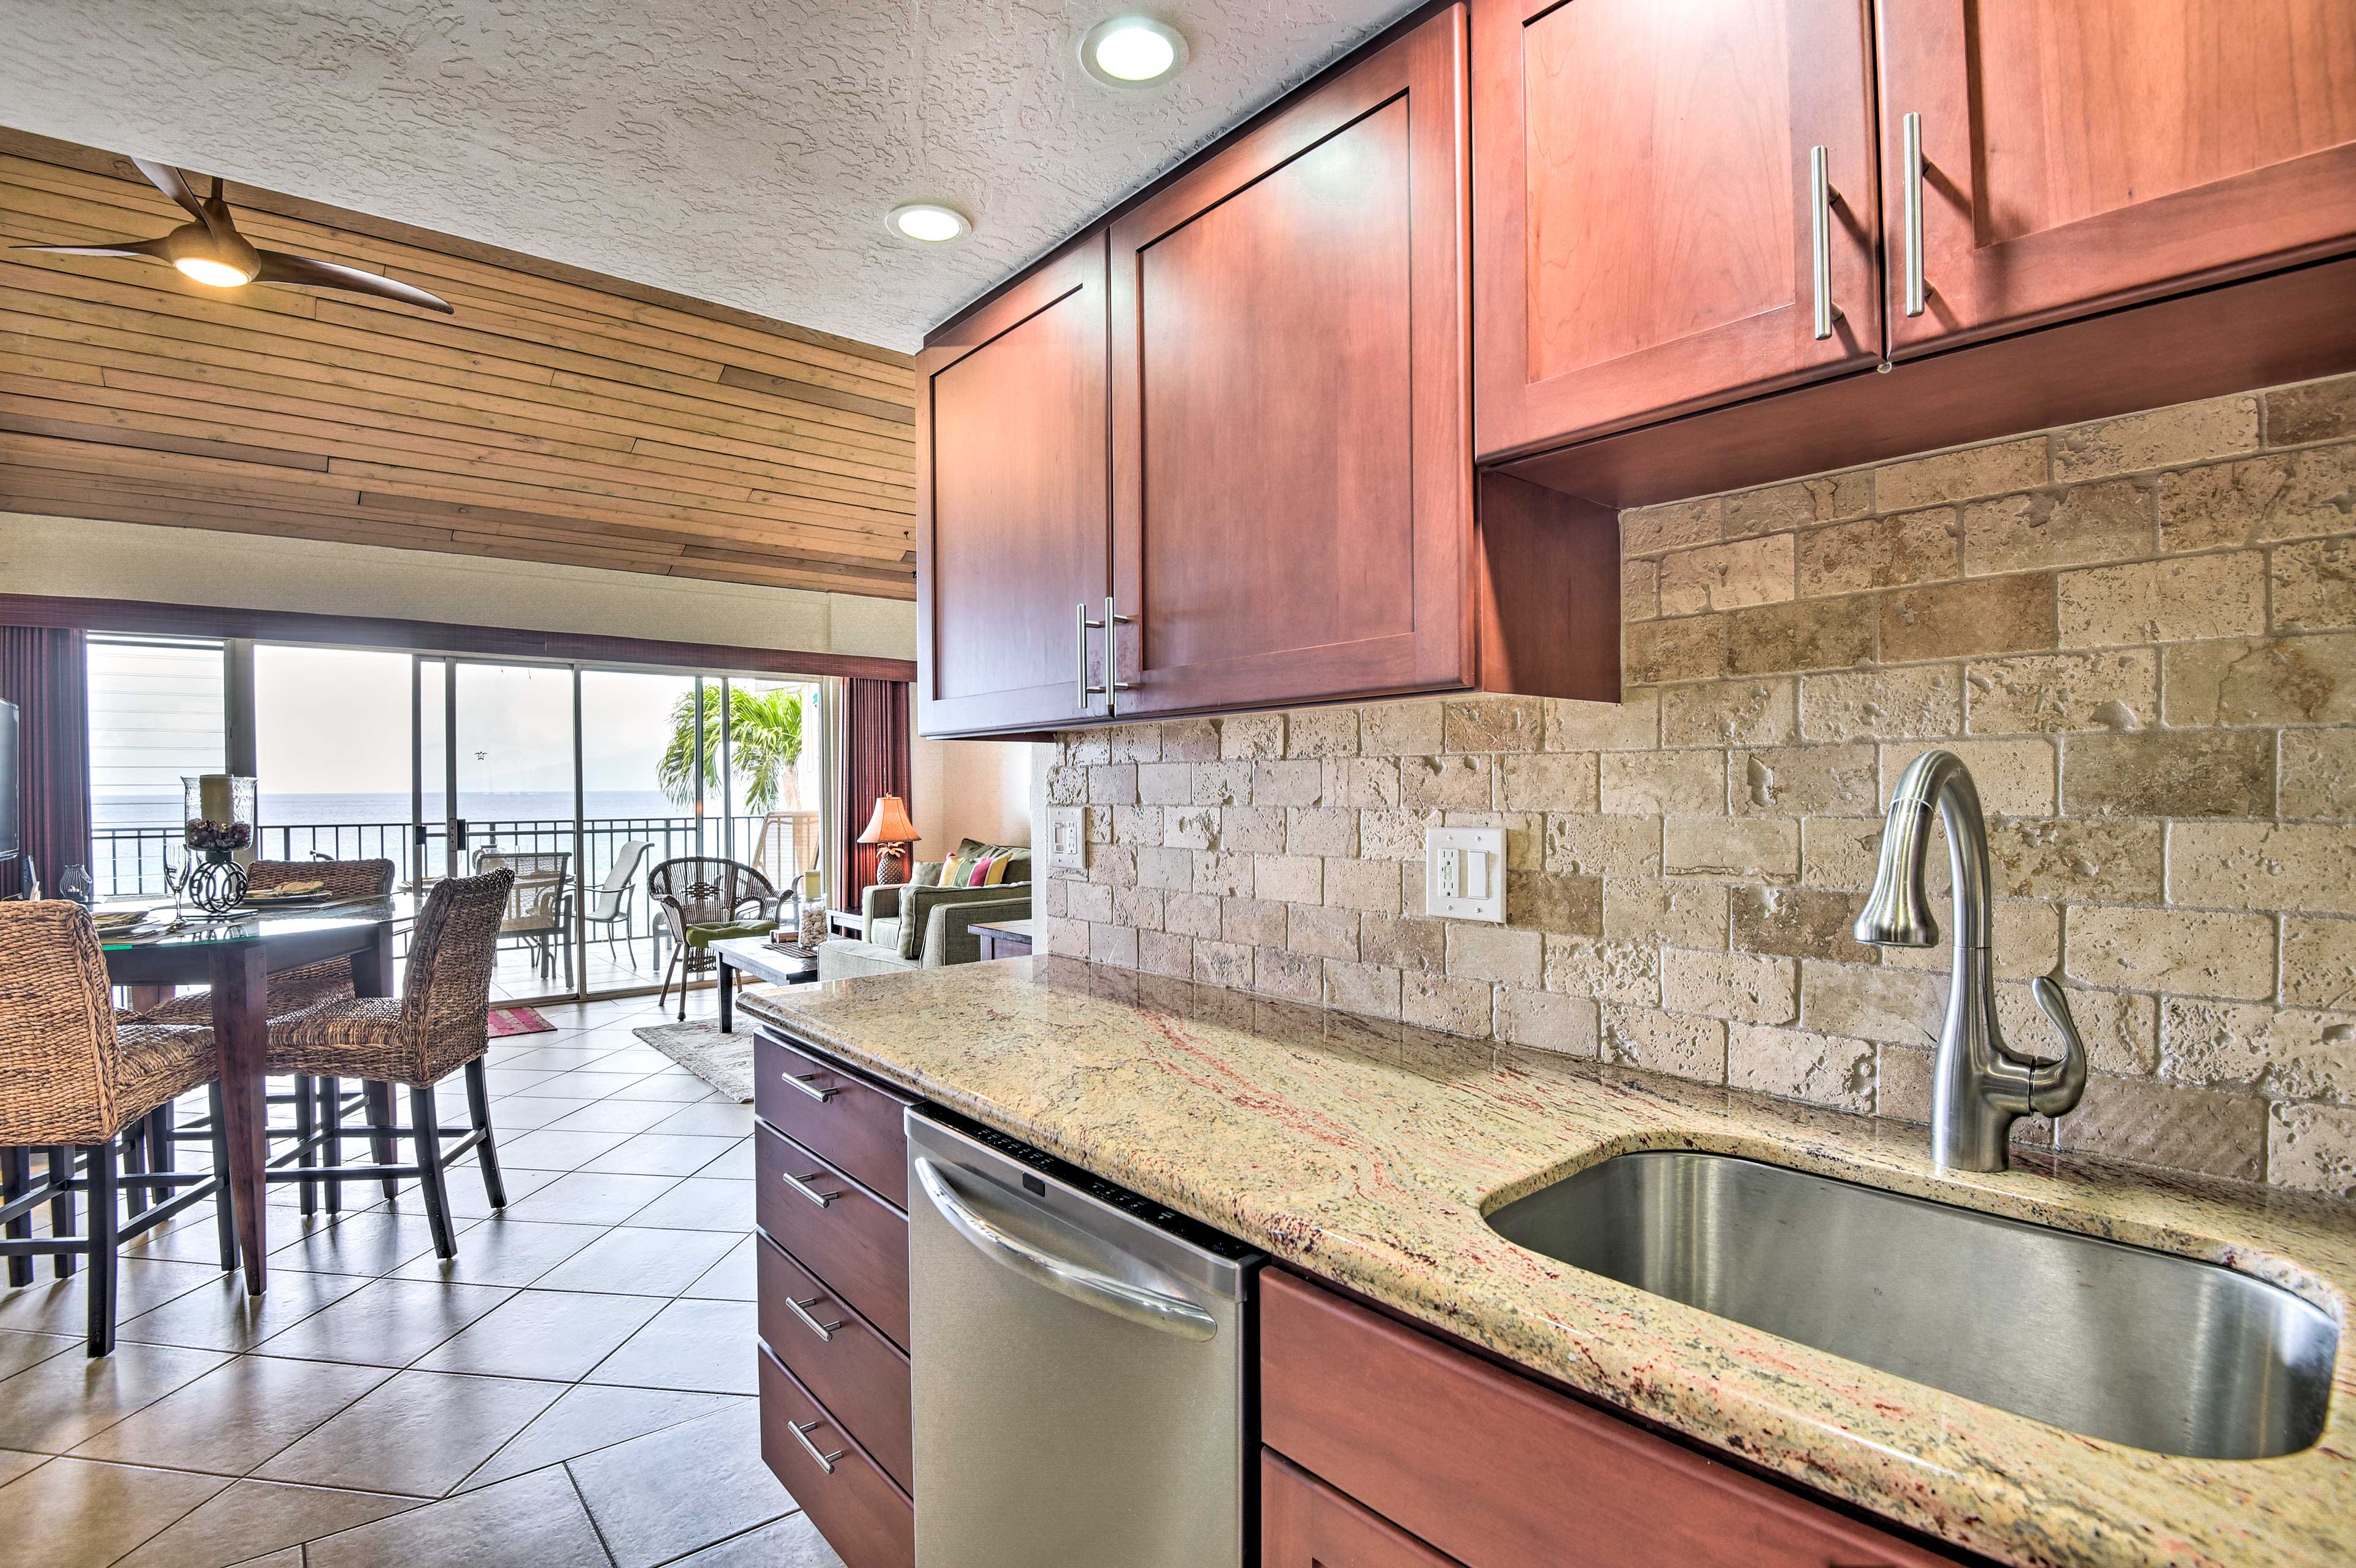 There's plenty of counter space for preparing meals or setting up a buffet line.